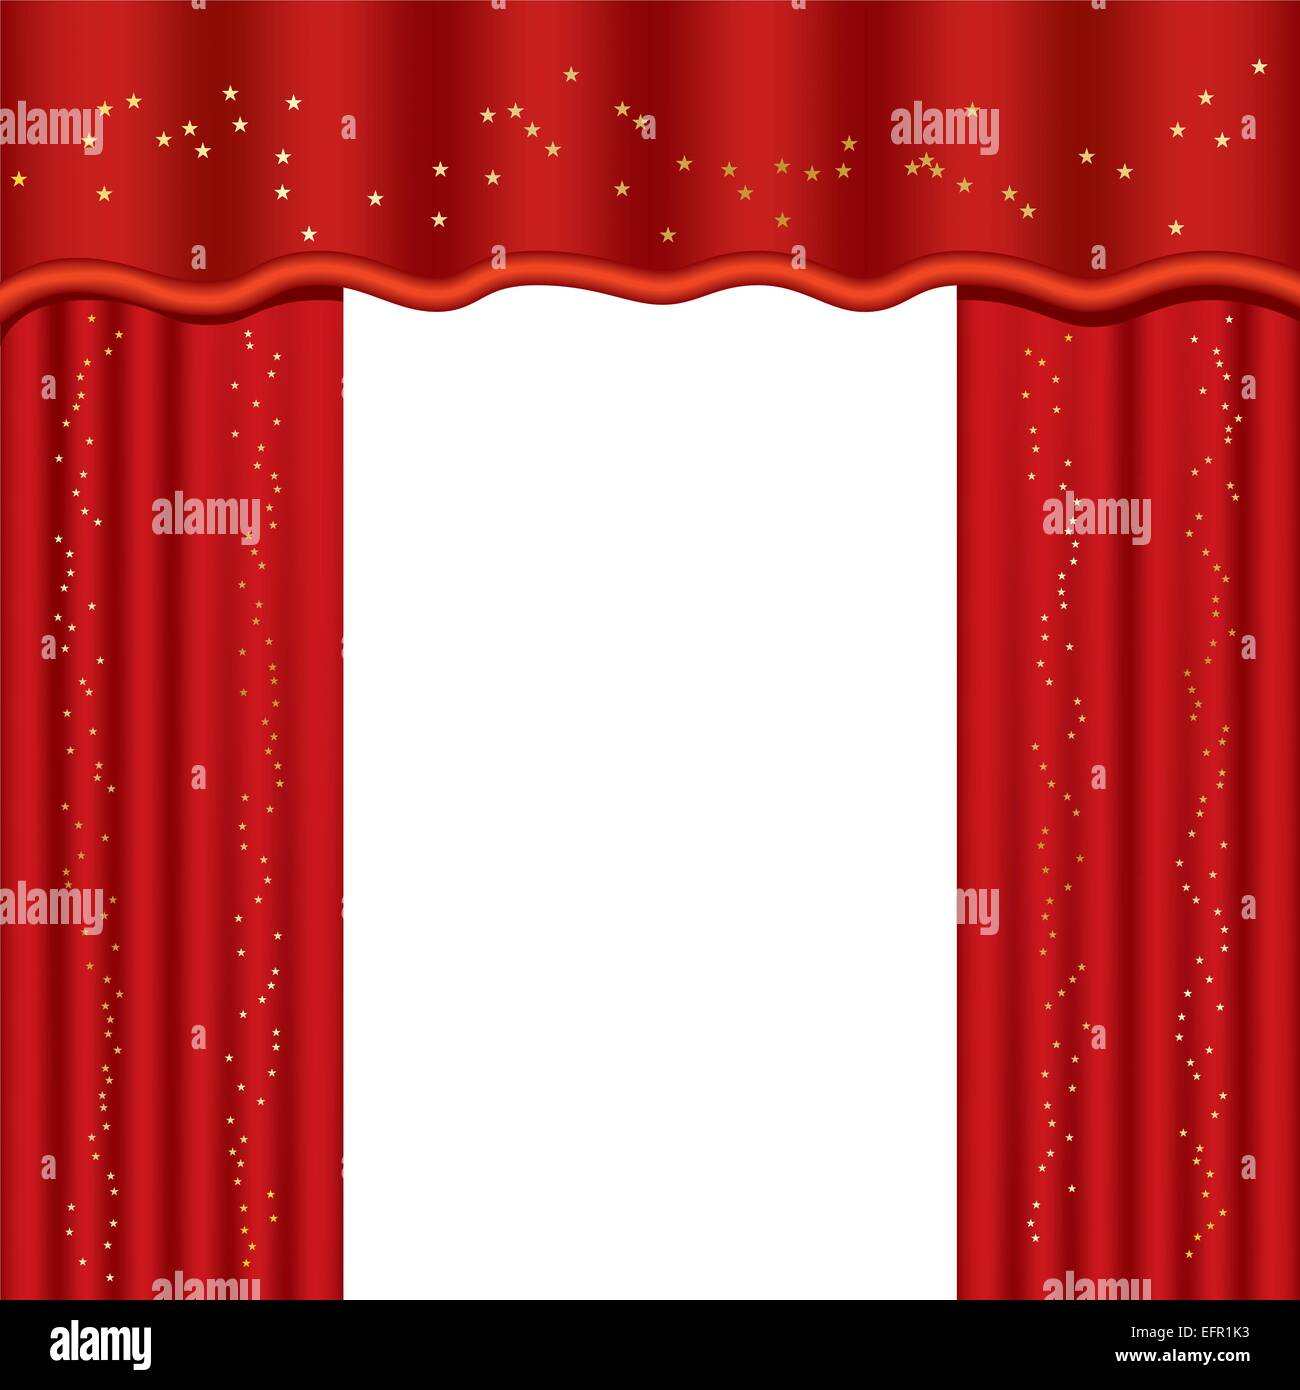 Used Theatrical Drapes: Theater Curtains With Copy Space, Vector Illustration